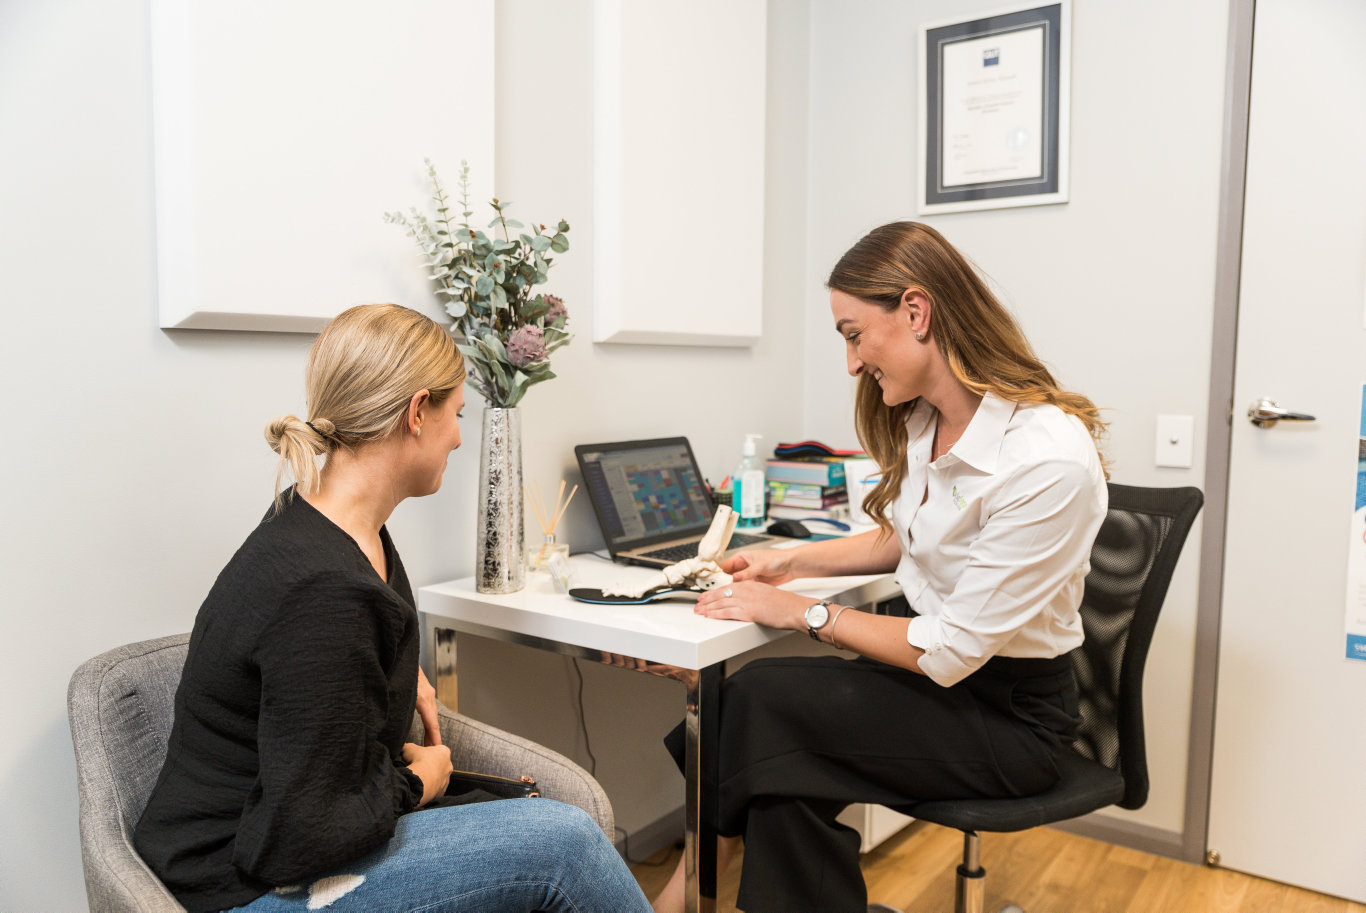 Owner & Head Podiatrist at Sole Focus Podiatry, Jessica Hannah, with a client